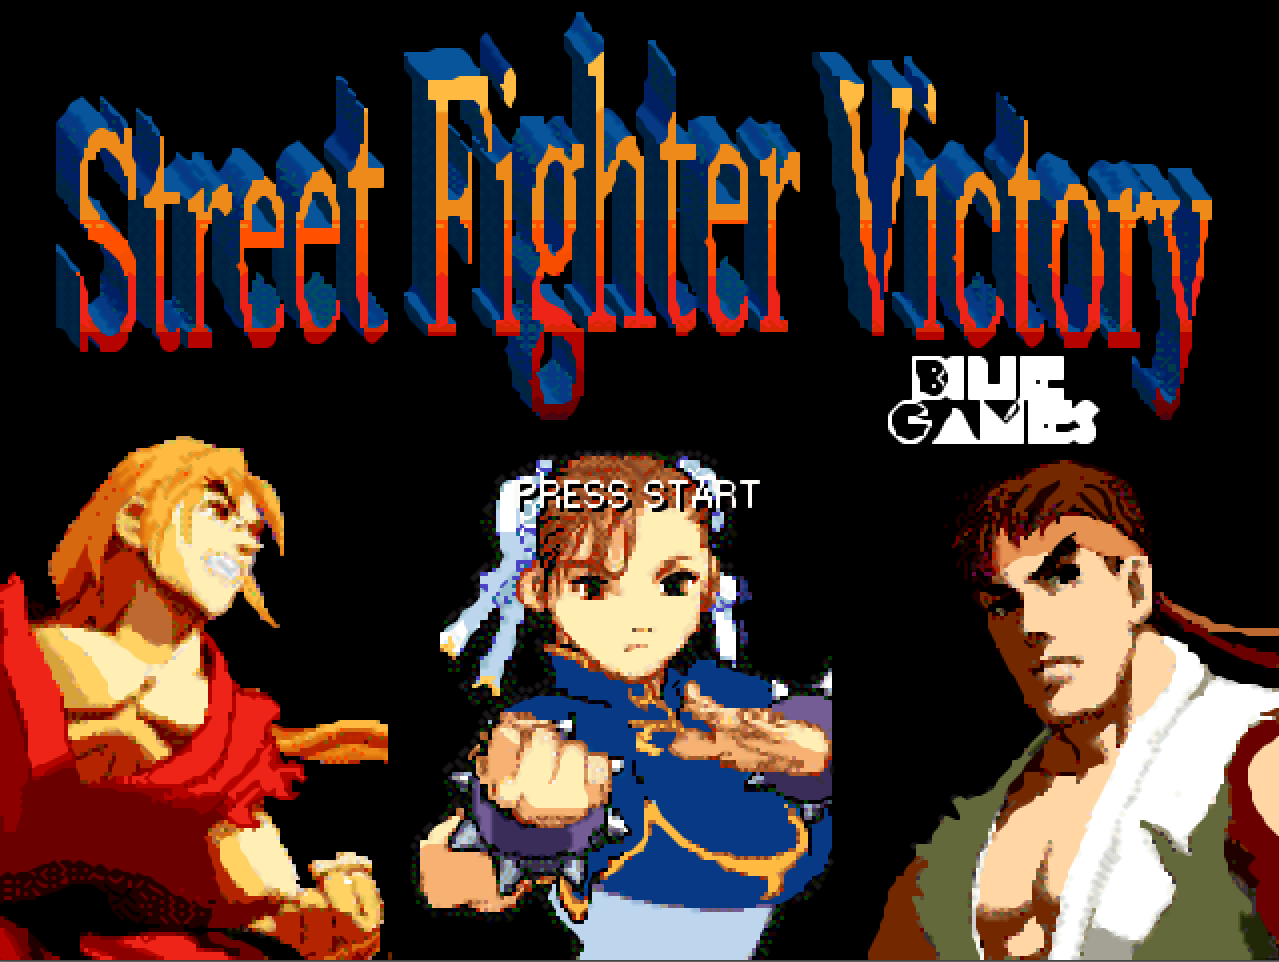 Street Fighter Victory